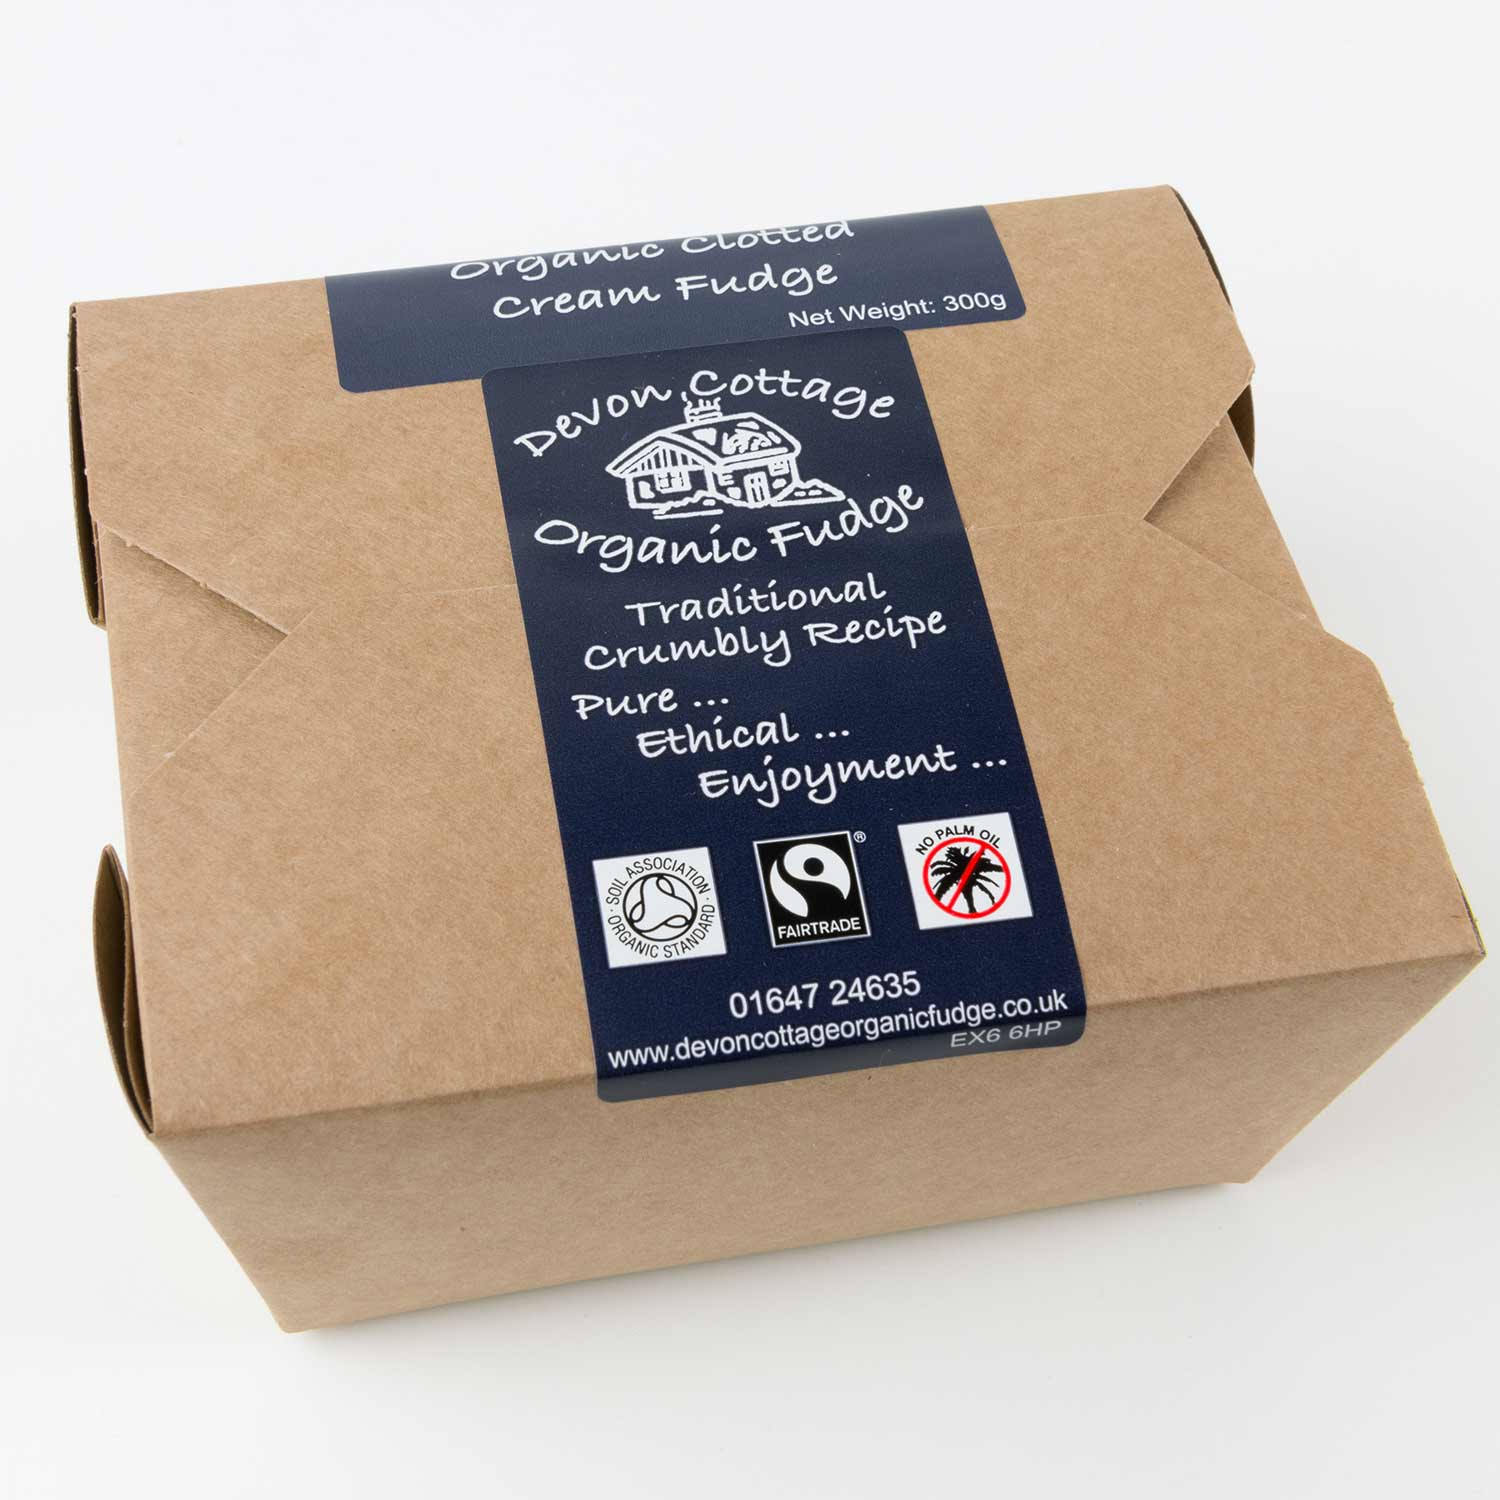 Organic Clotted Cream Fudge - 300g box product photo Front View - additional image 1 T